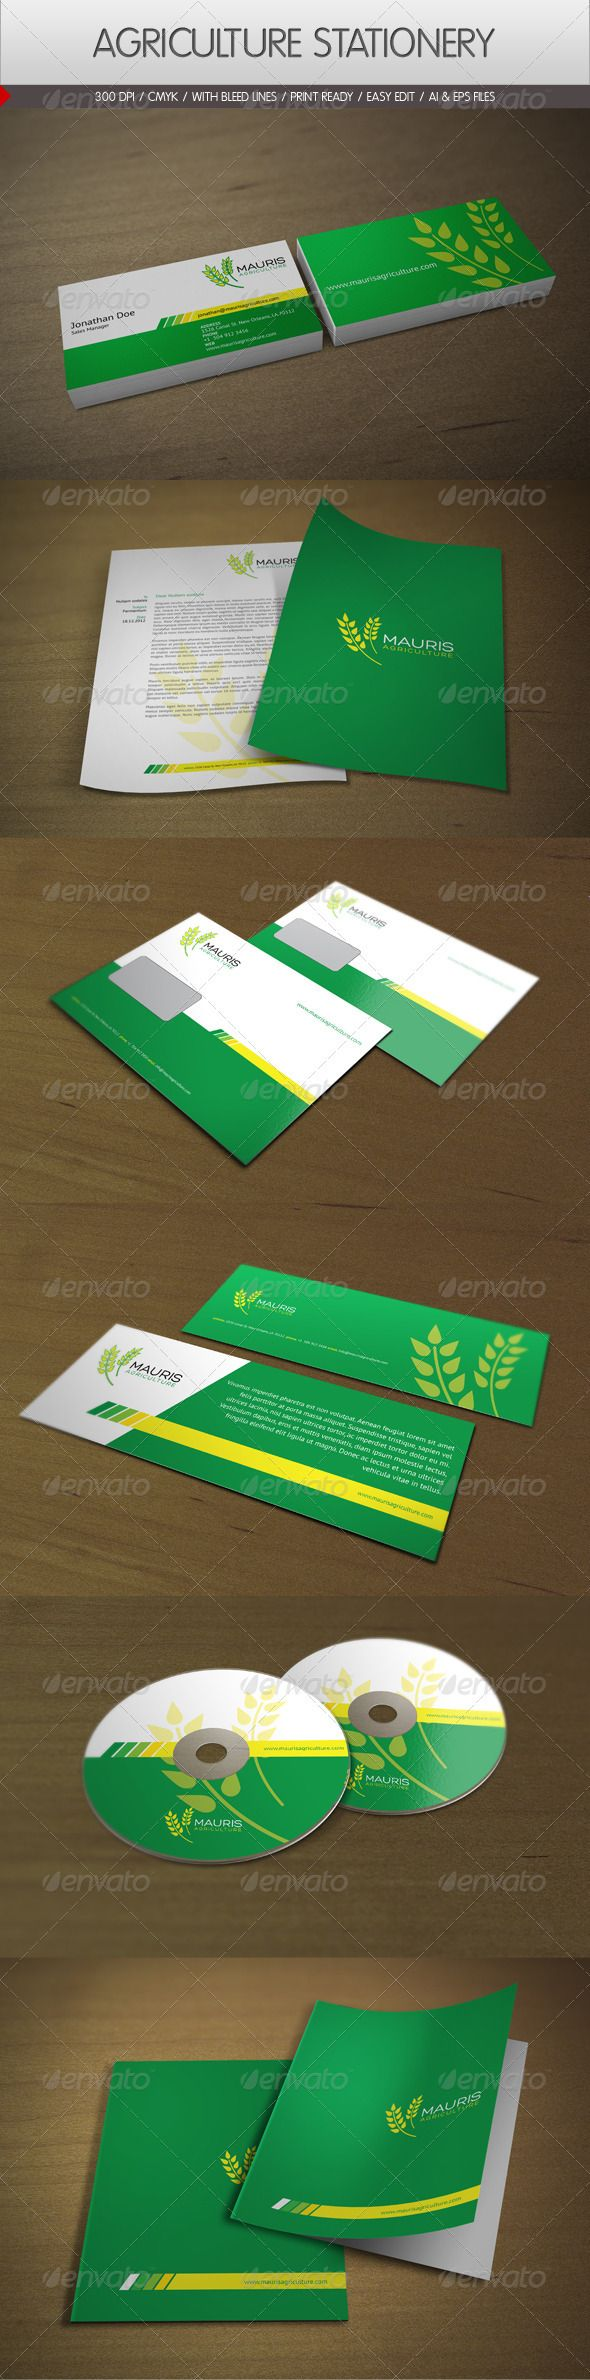 Agriculture Corporate Identity